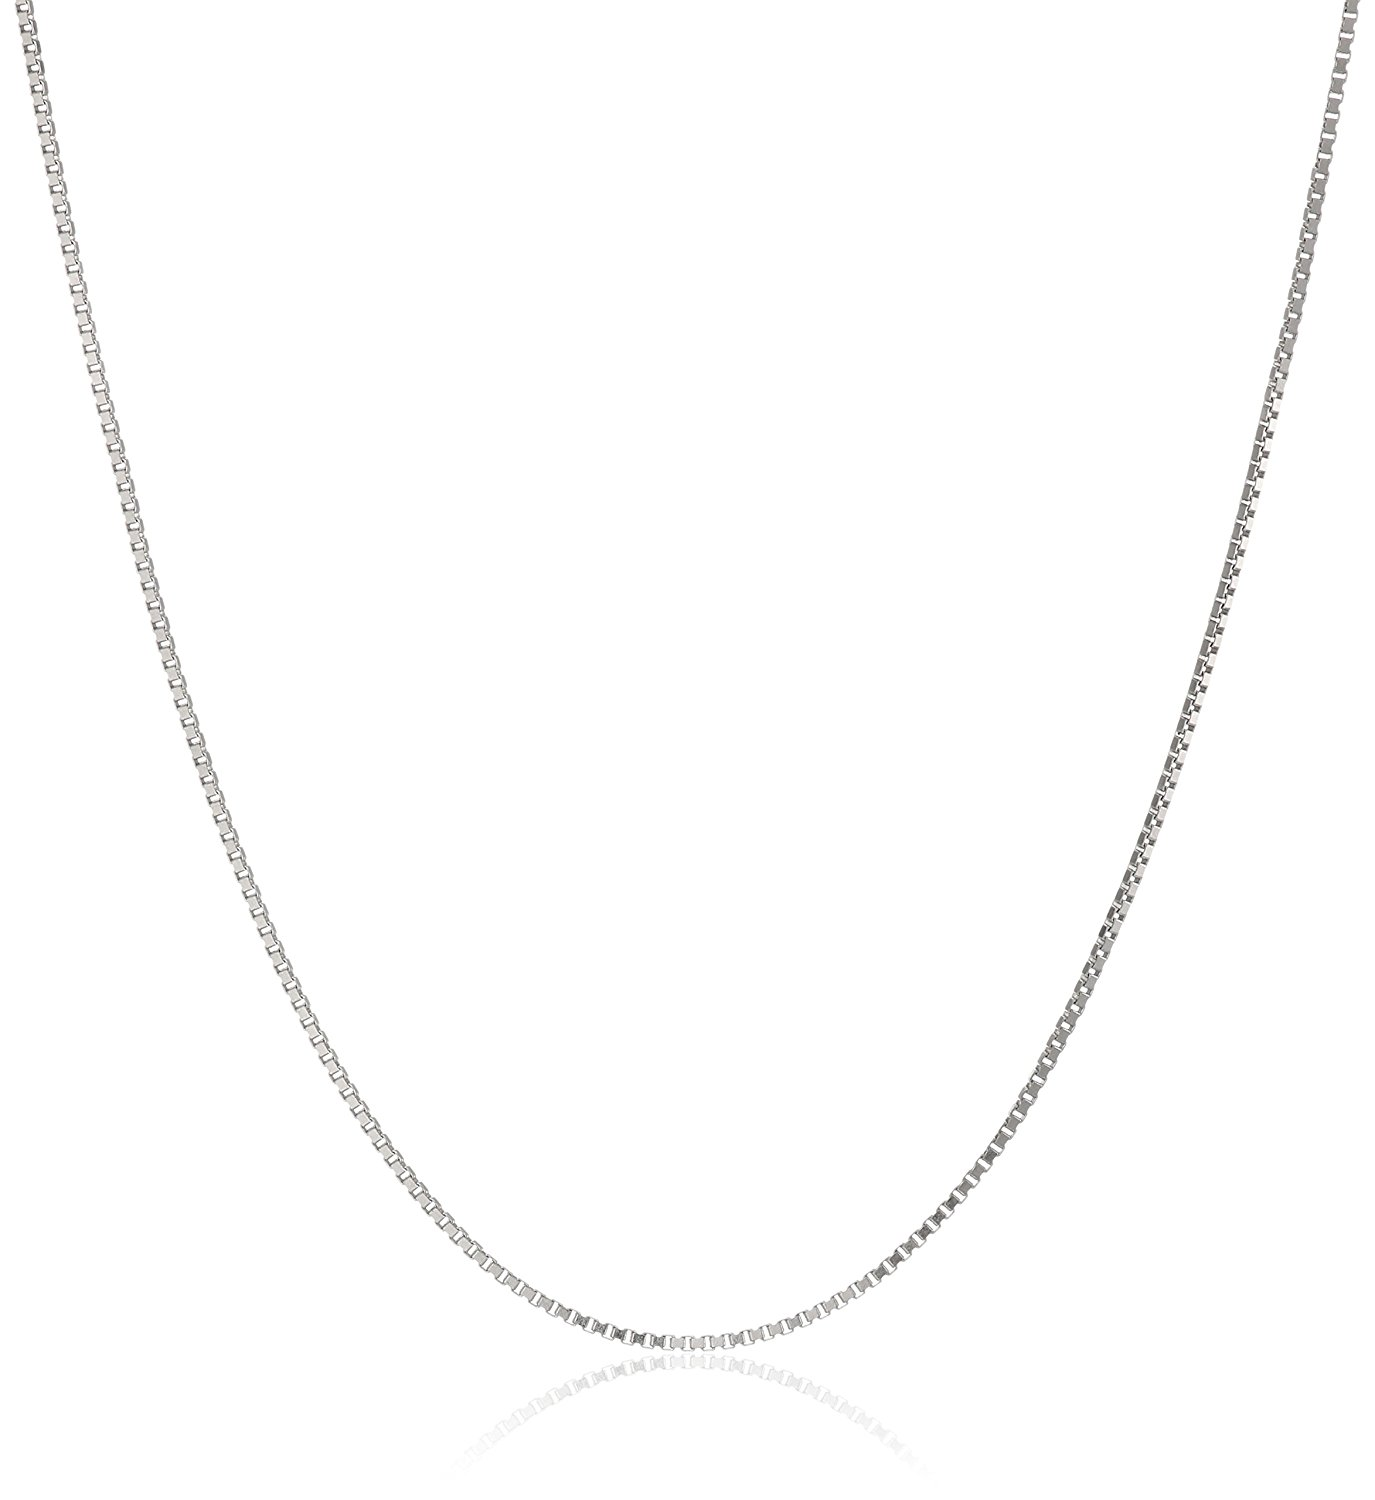 necklace chain amazon.com: 14k white gold solid box chain necklace (.50mm ), 18 sqgmuyd